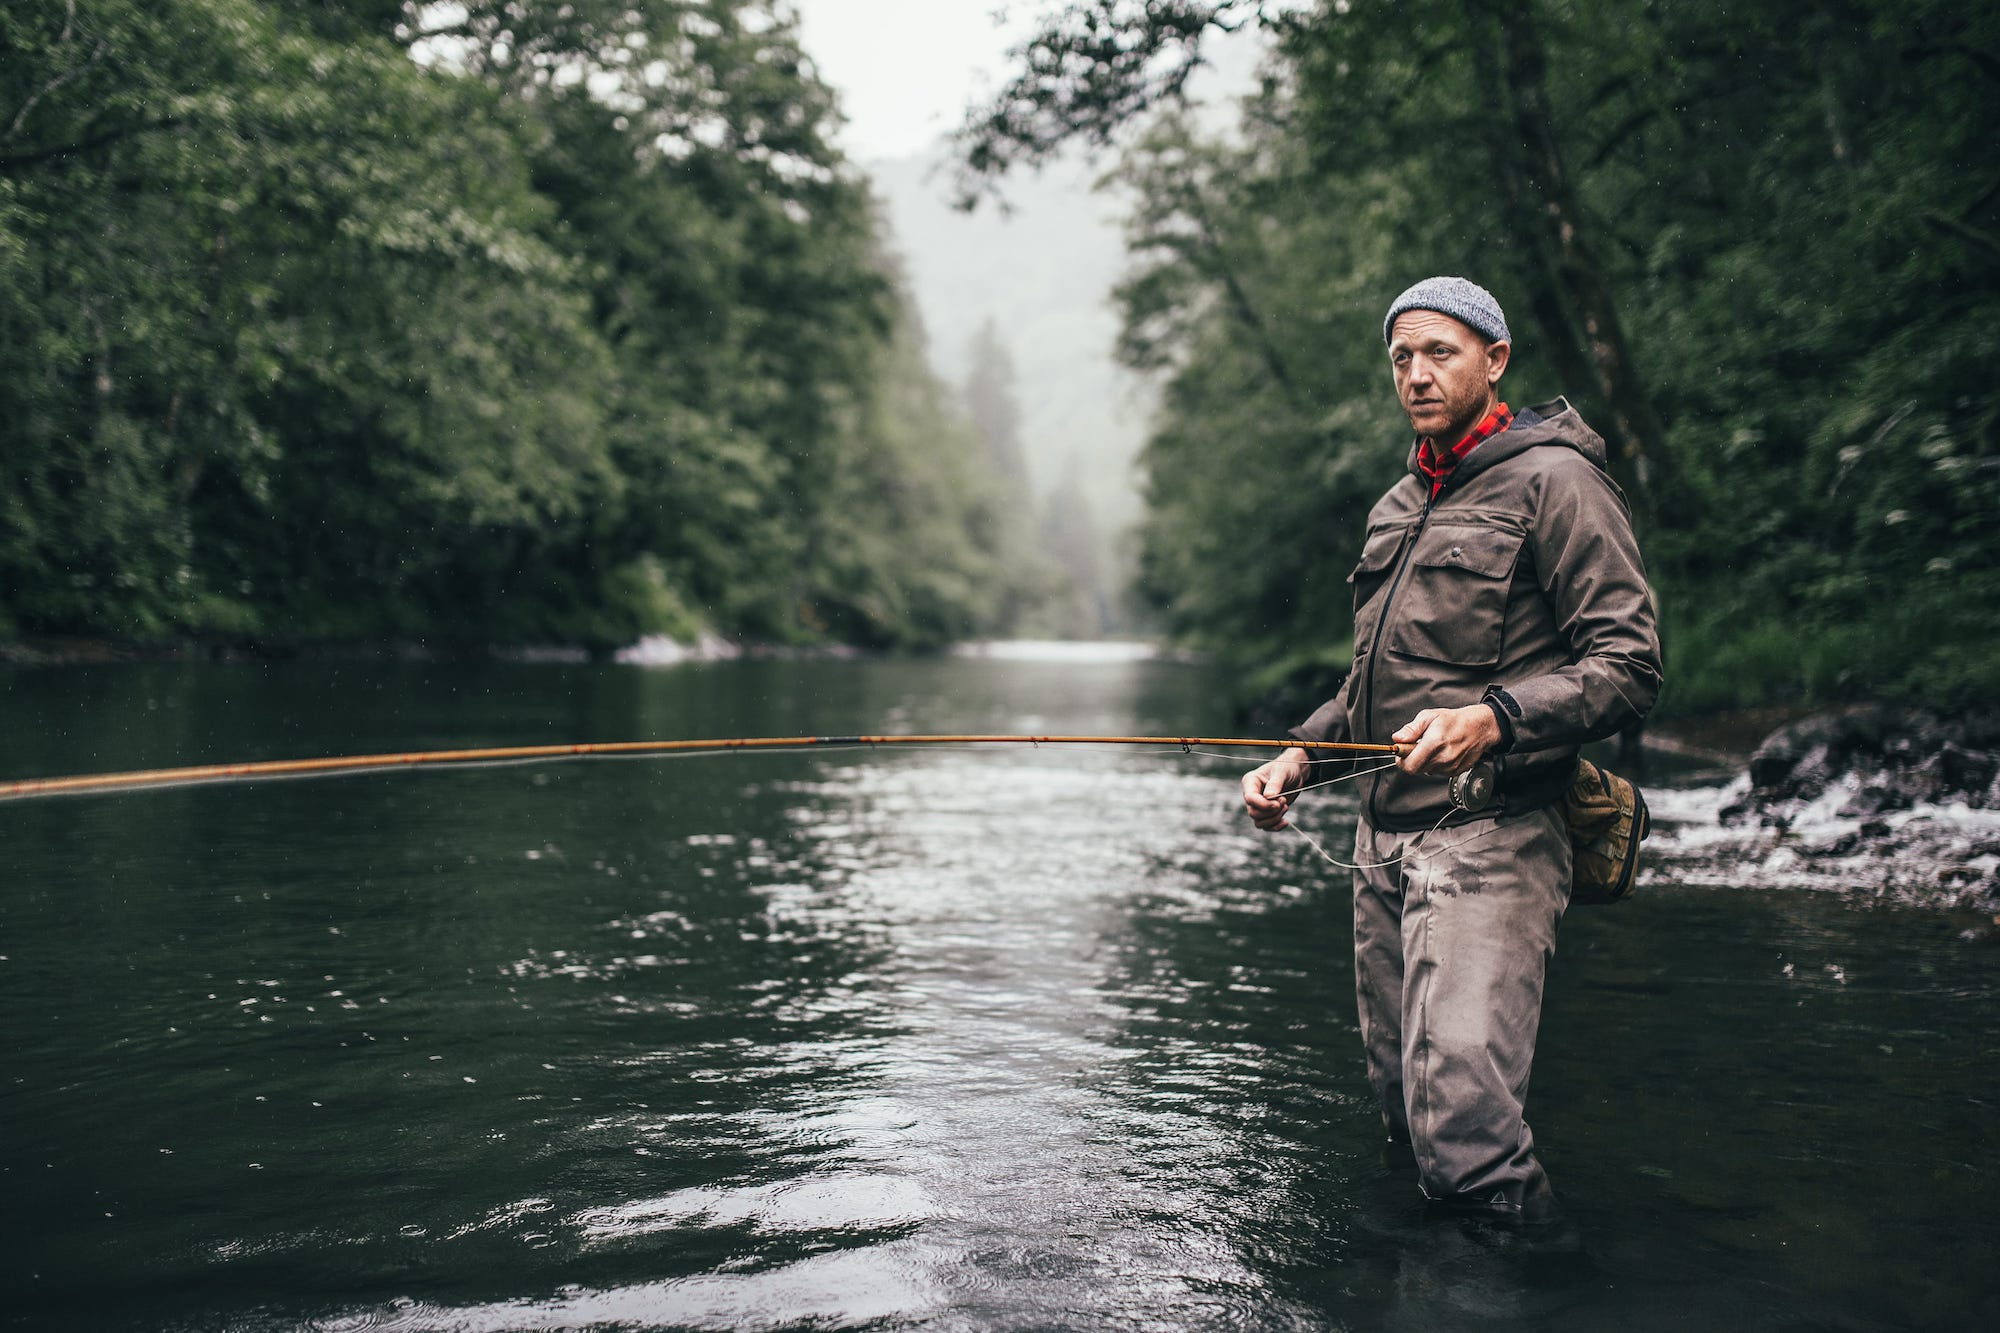 Ep 48: The Fly Fishing Collaborative, with Bucky Buchstaber